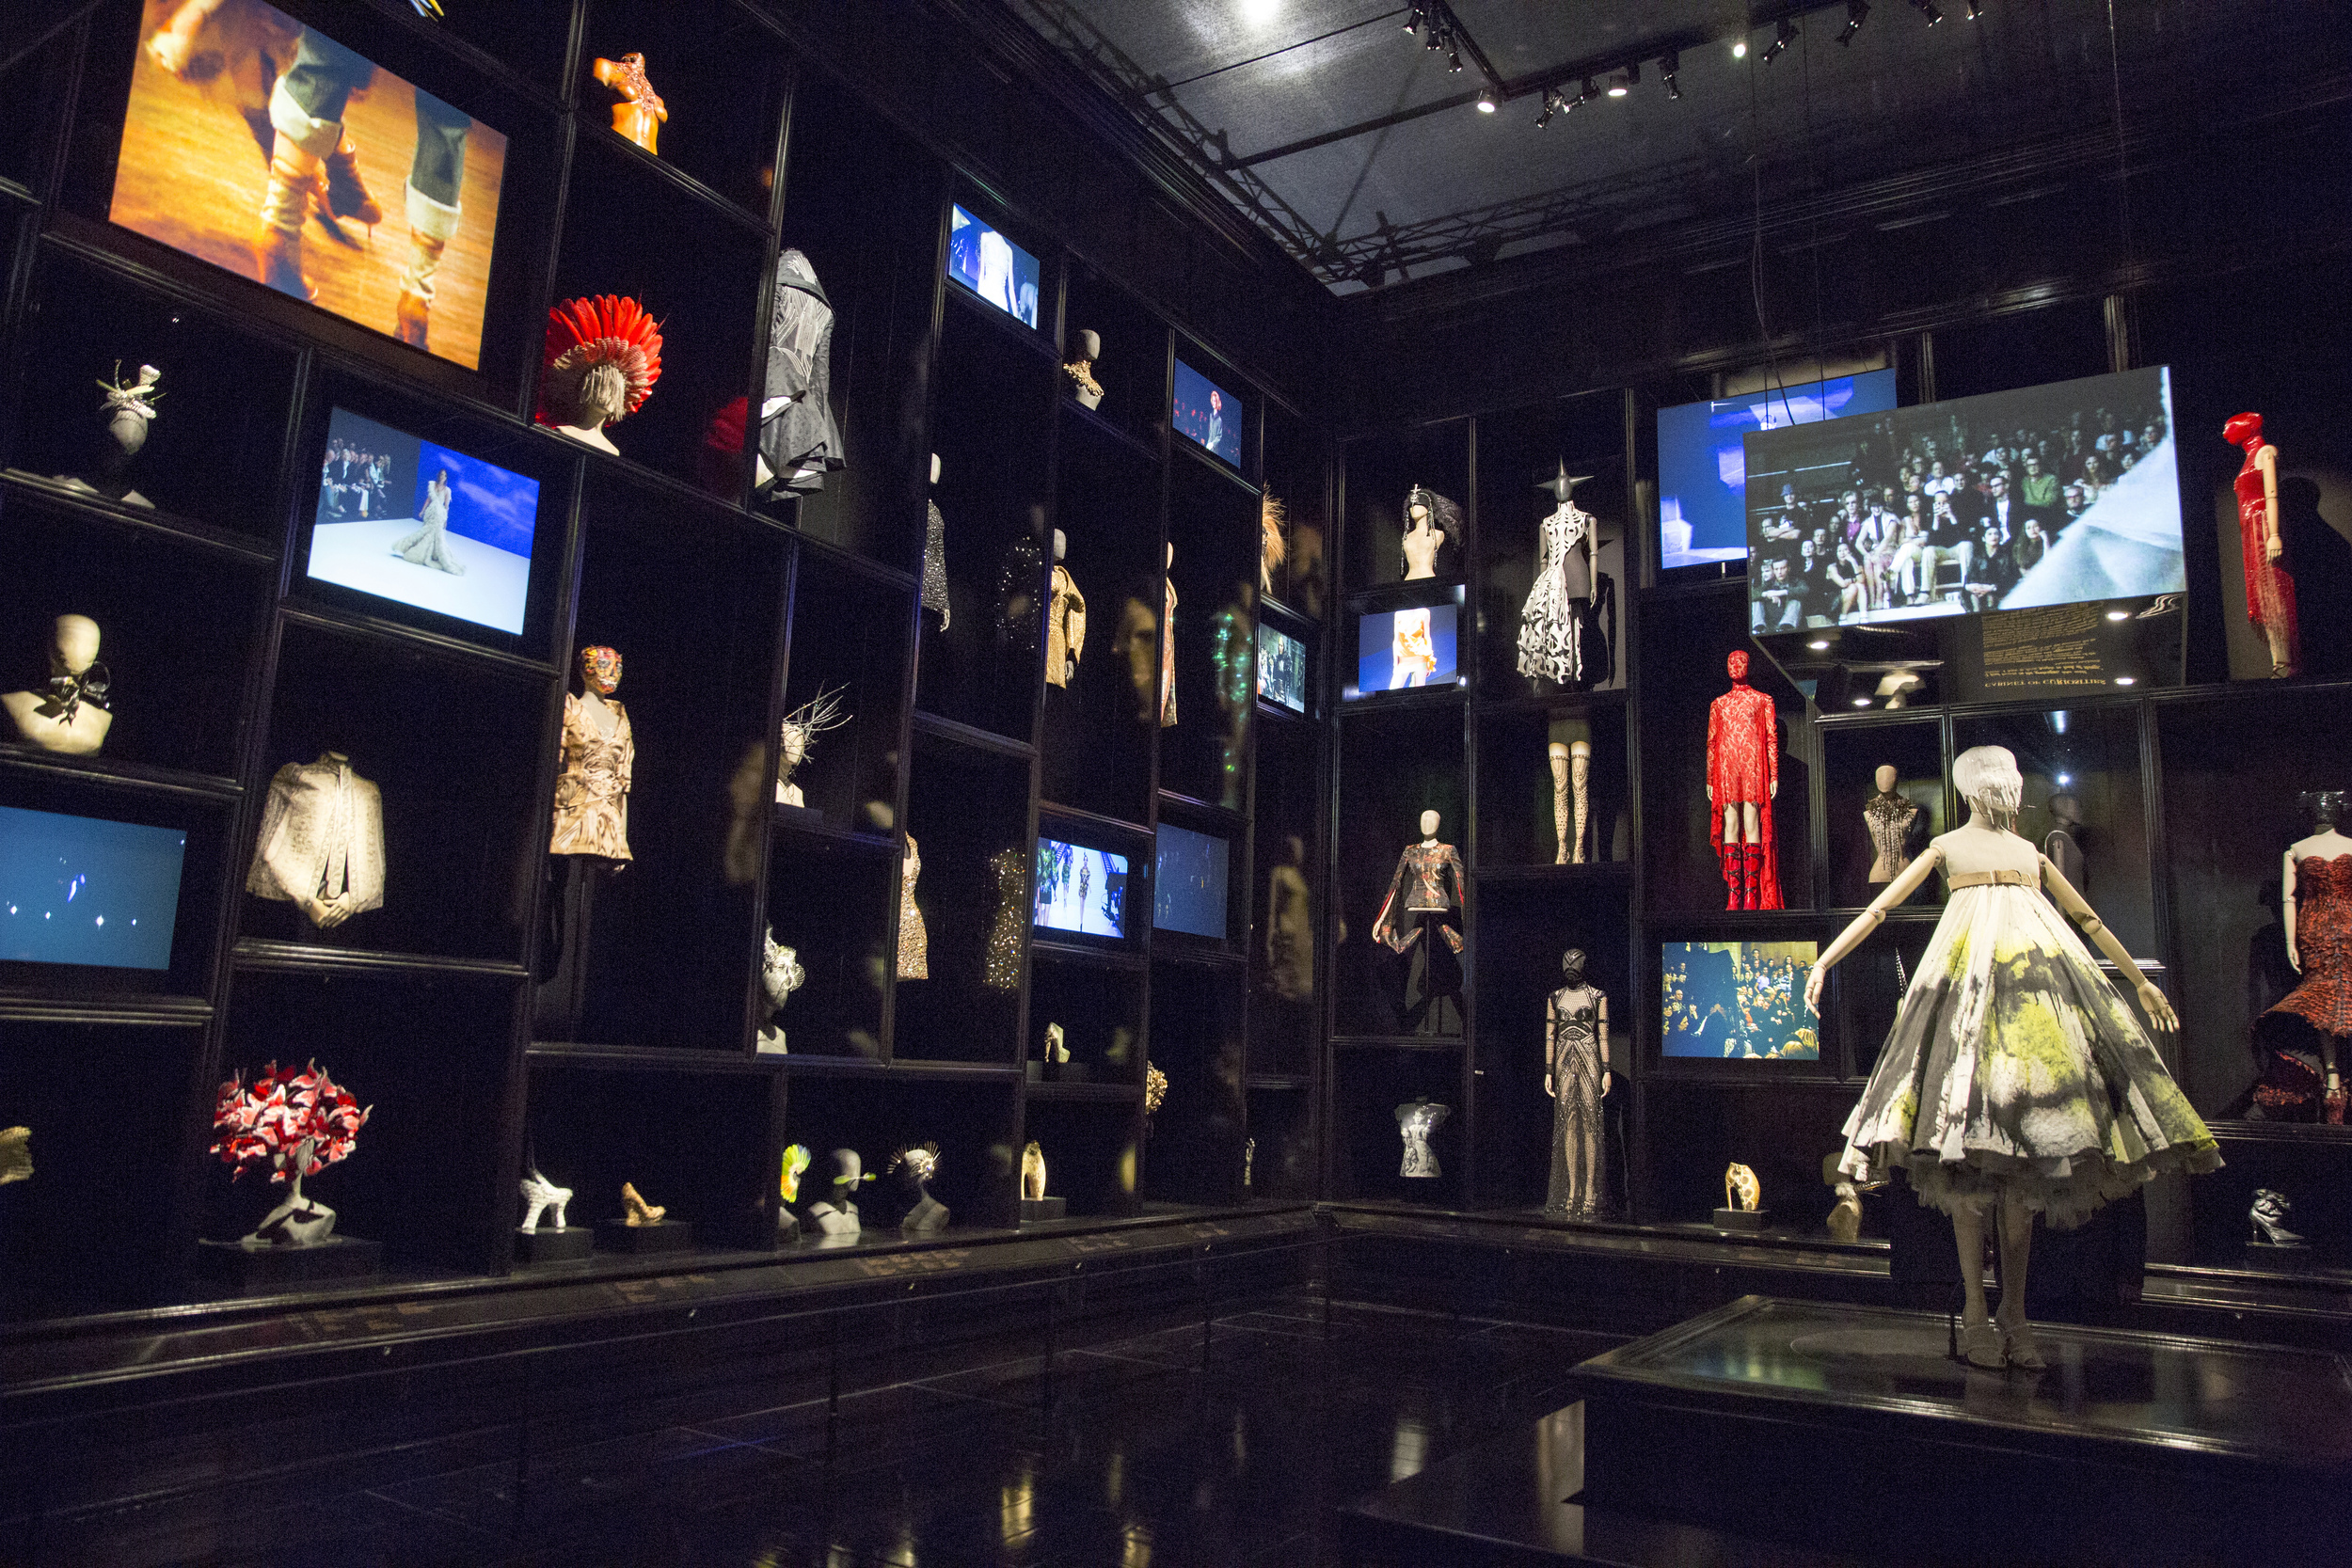 Installation view of 'Cabinet of Curiosities' gallery